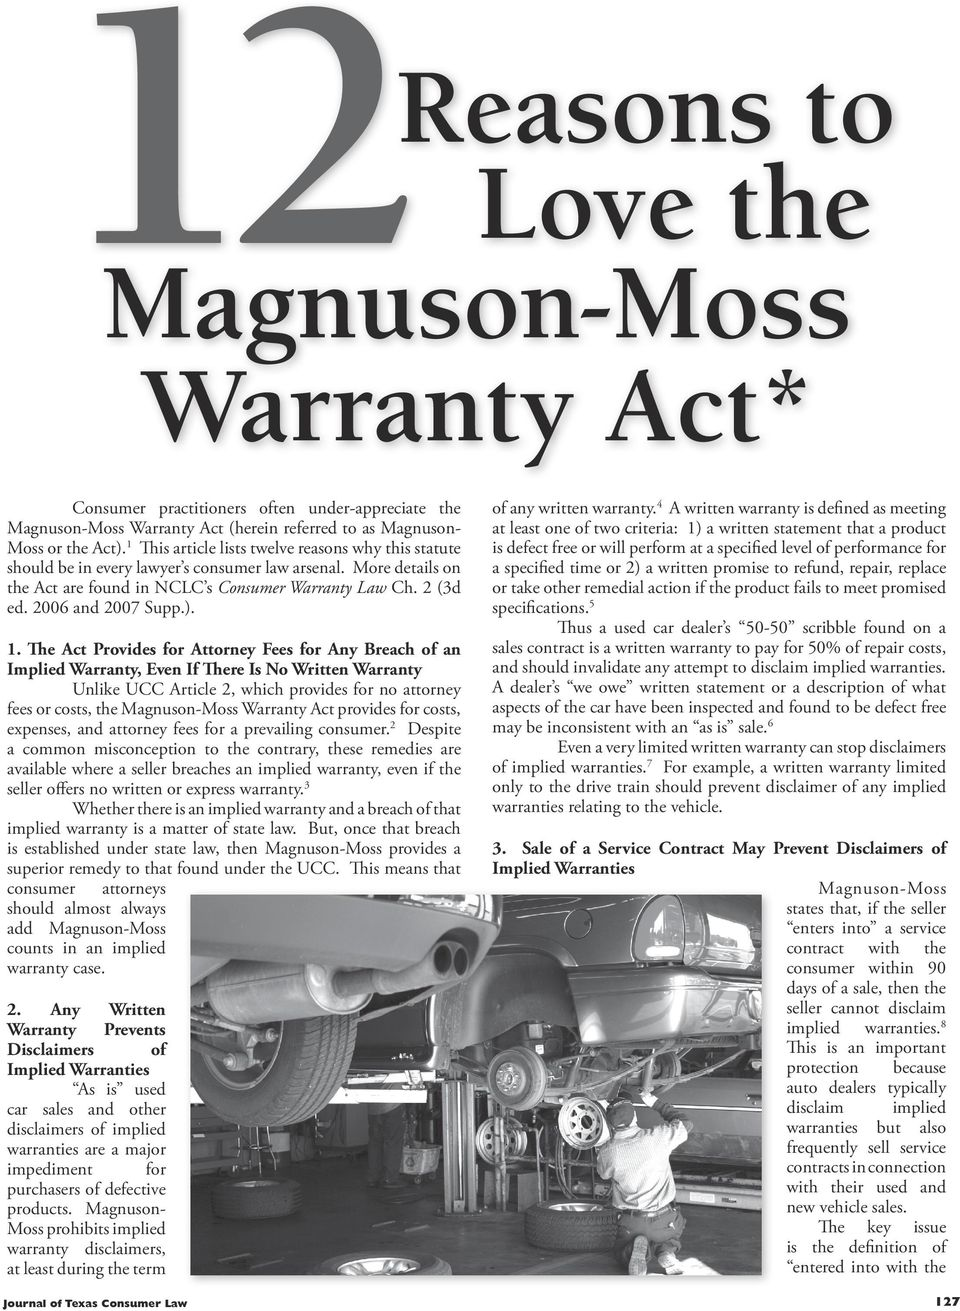 The Act Provides for Attorney Fees for Any Breach of an Implied Warranty, Even If There Is No Written Warranty Unlike UCC Article 2, which provides for no attorney fees or costs, the Magnuson-Moss